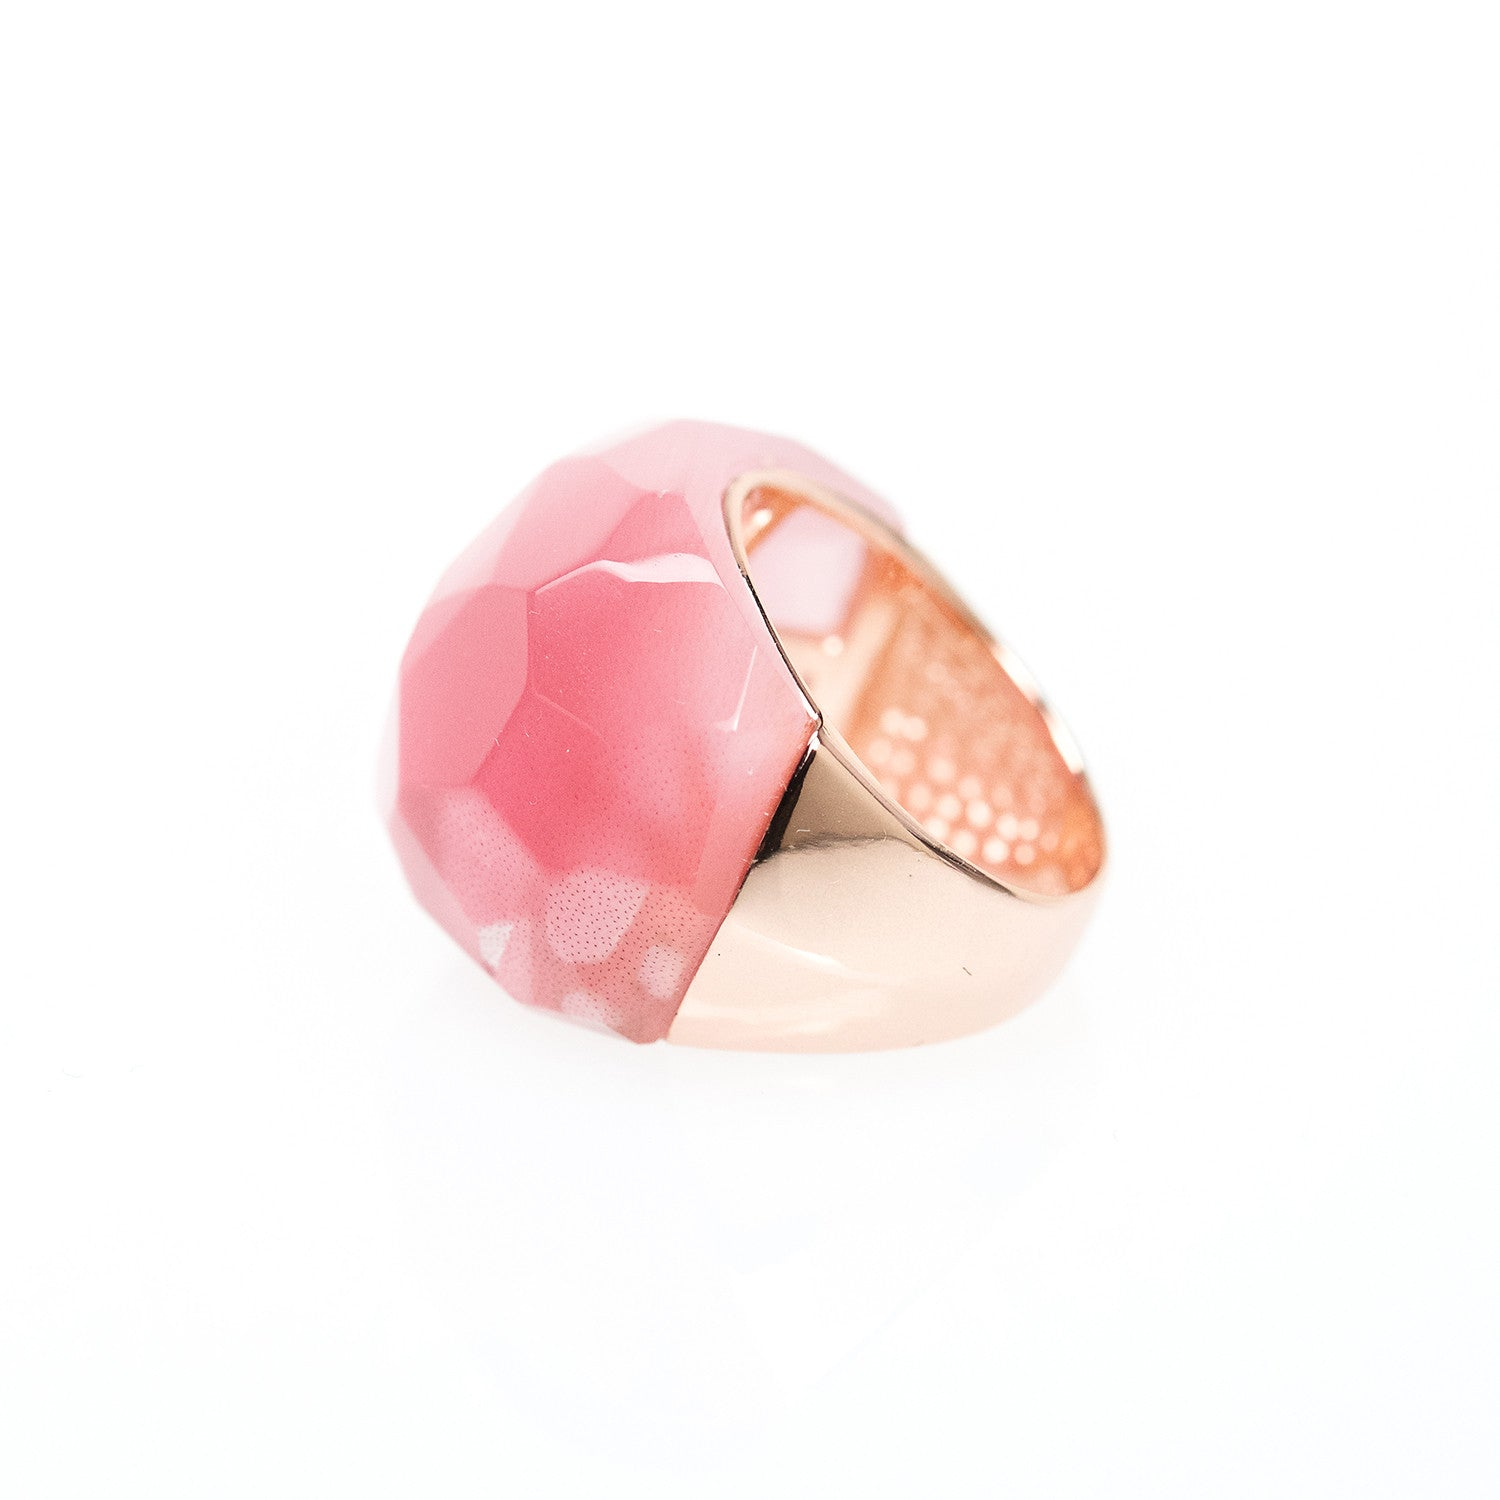 Lattice Round Cocktail Ring - pink cat's eye